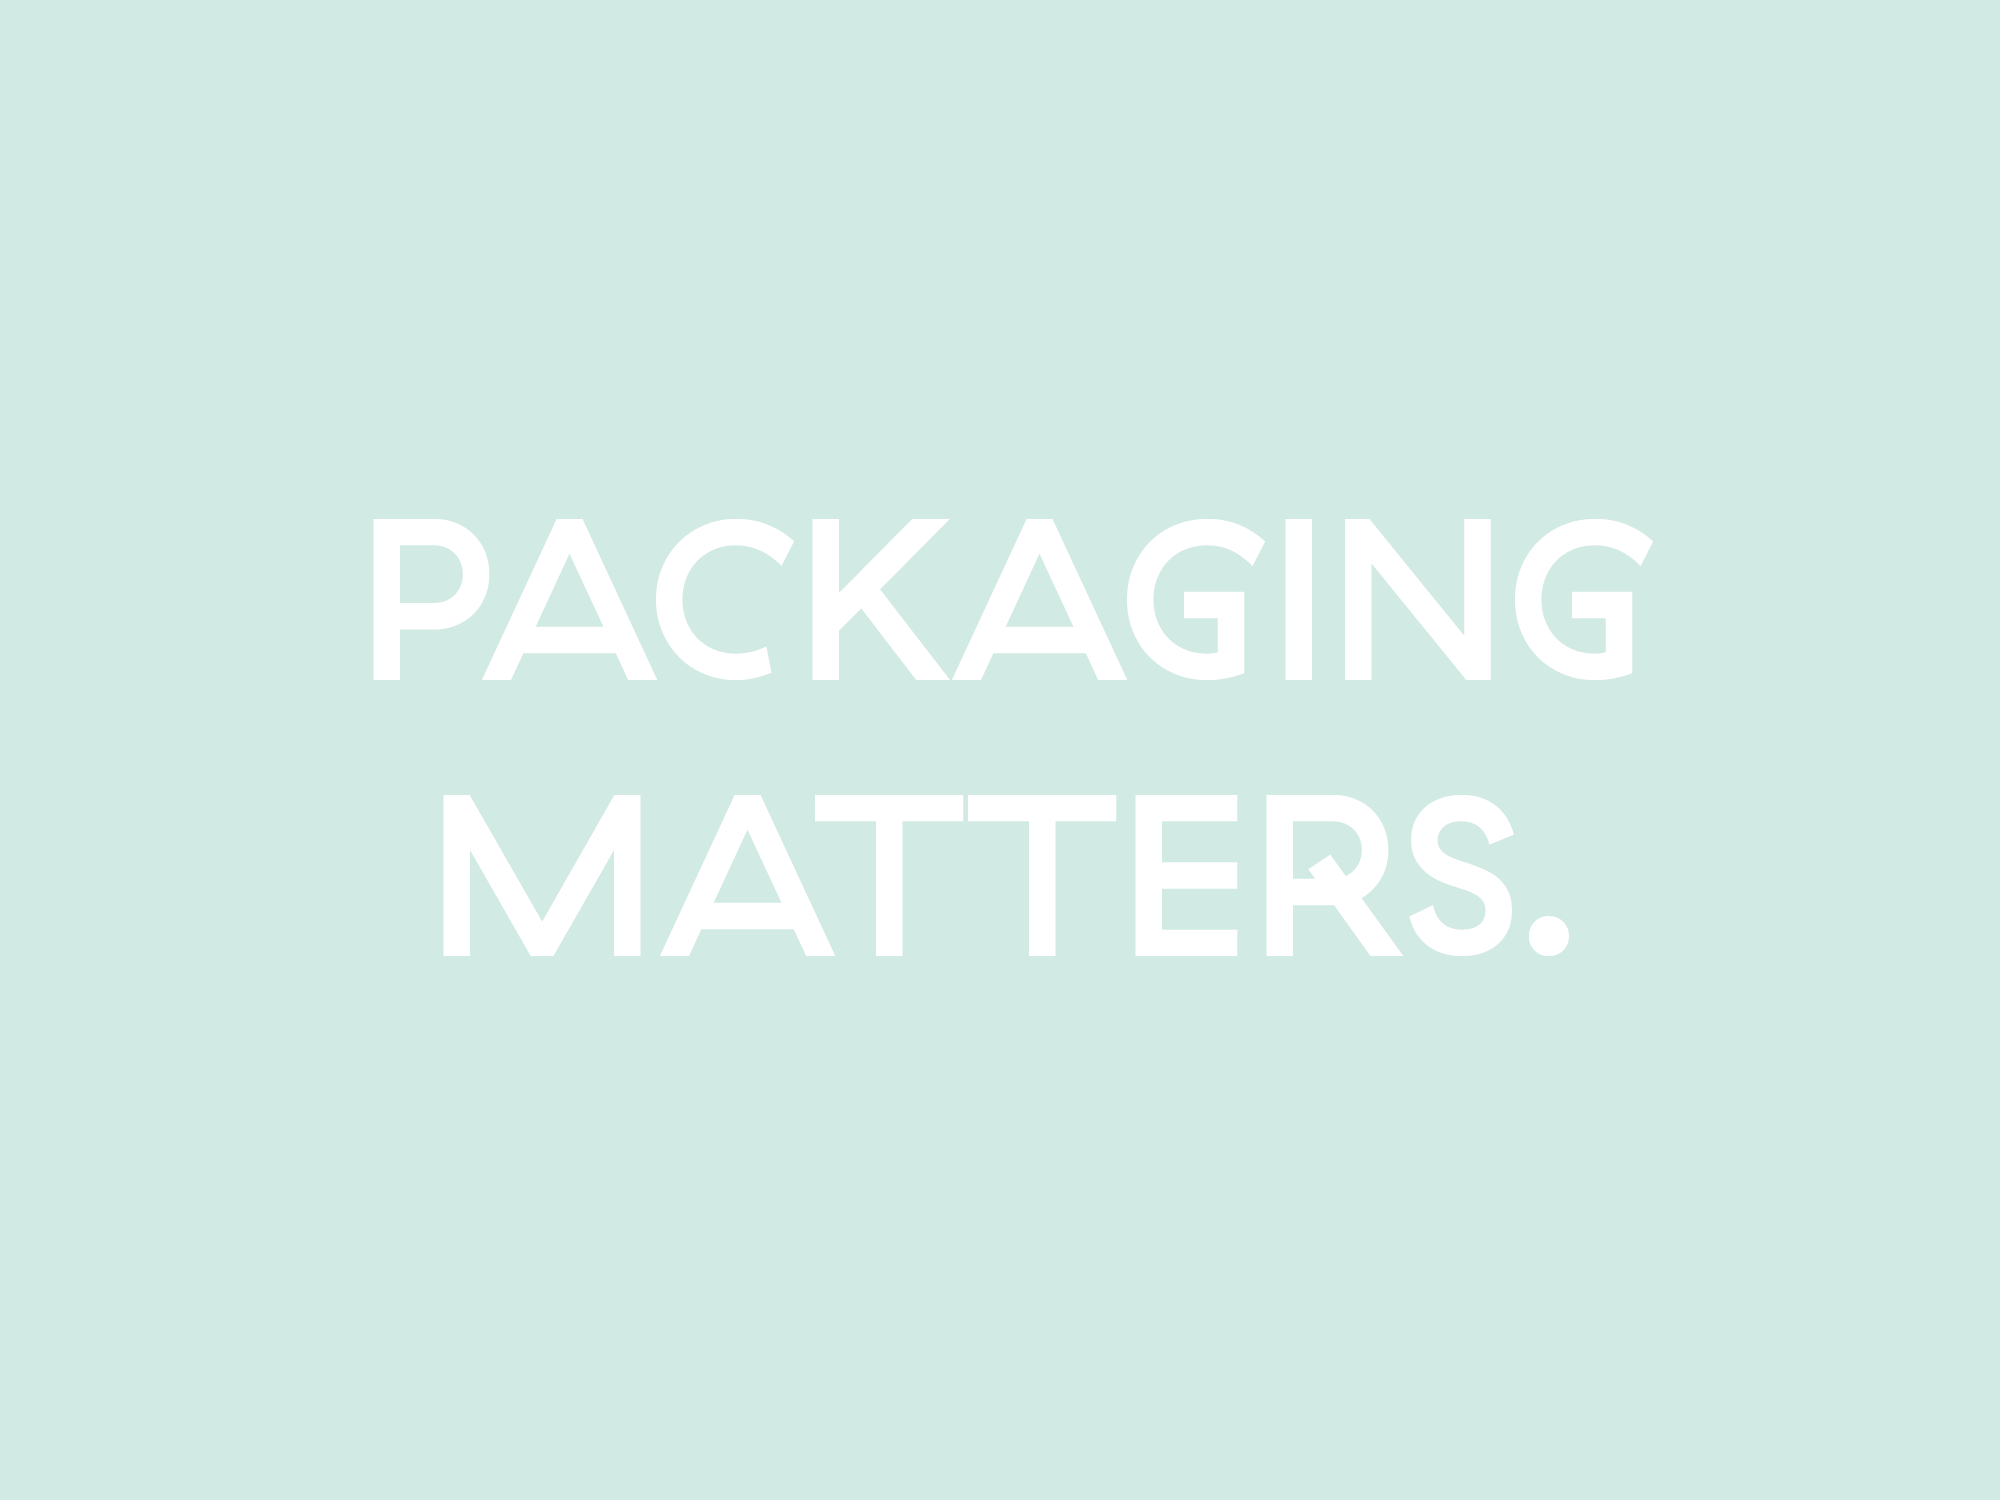 packaging_matters-01